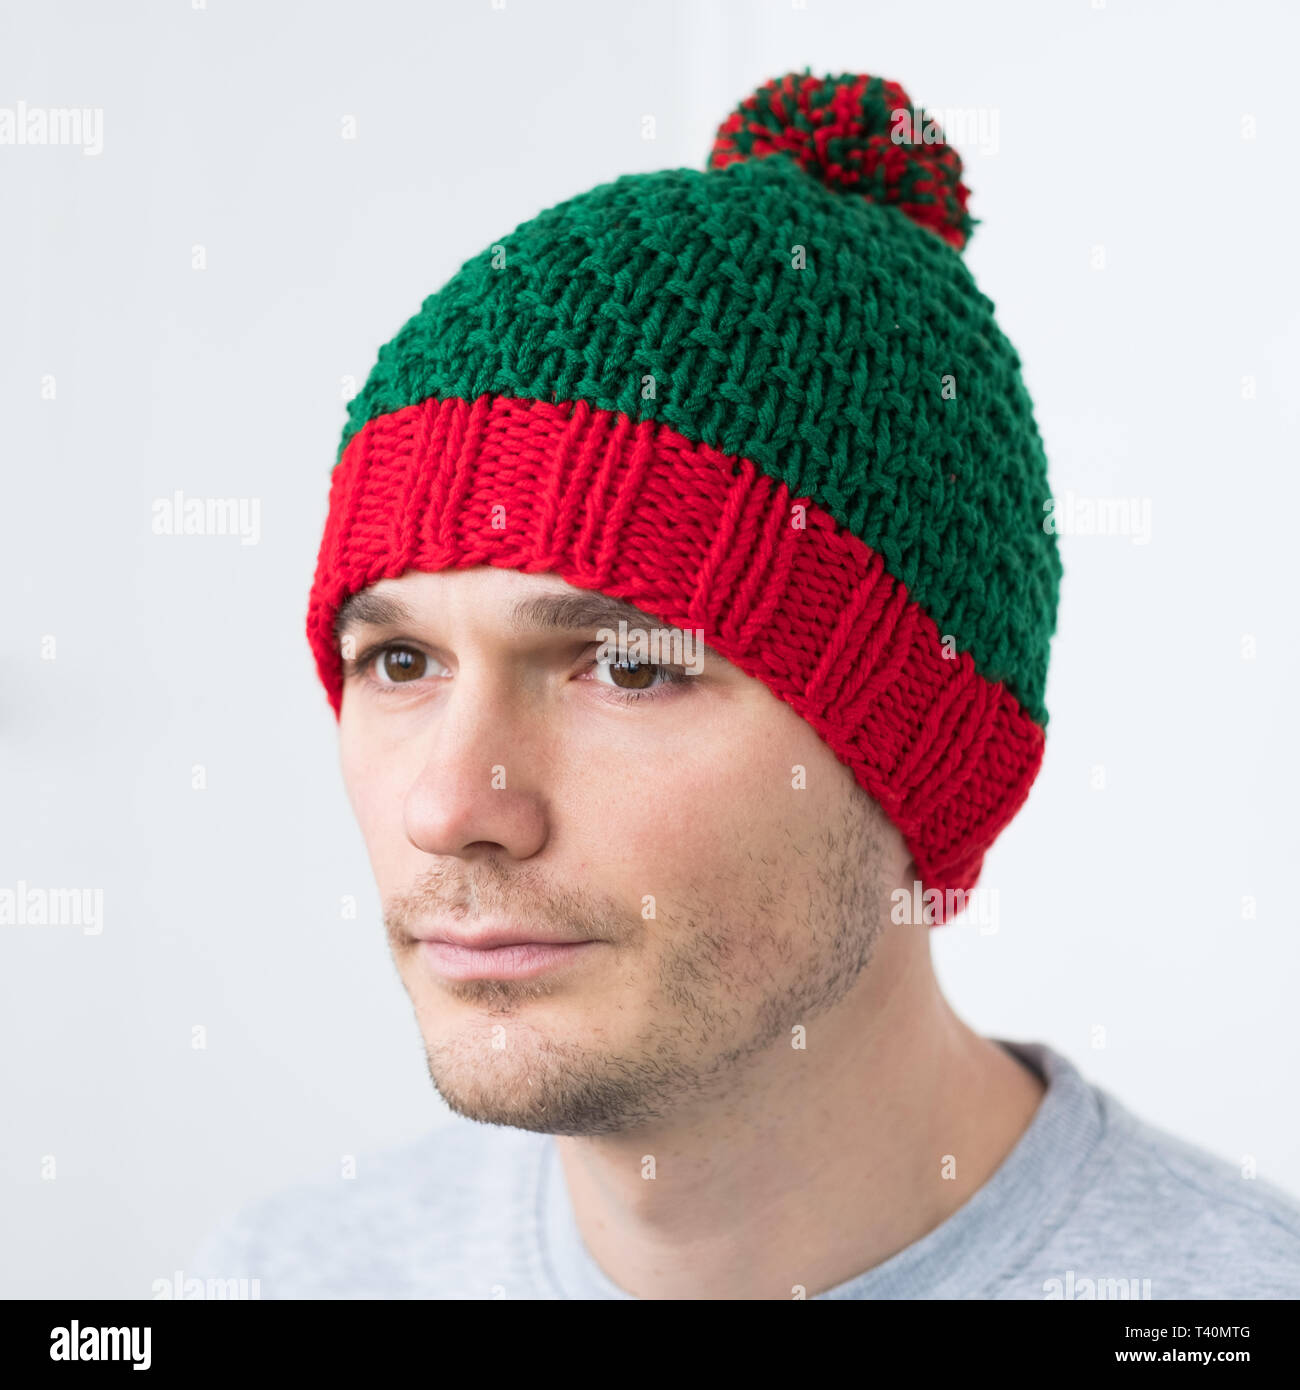 0e570da6910 Green Beanie Stock Photos   Green Beanie Stock Images - Alamy